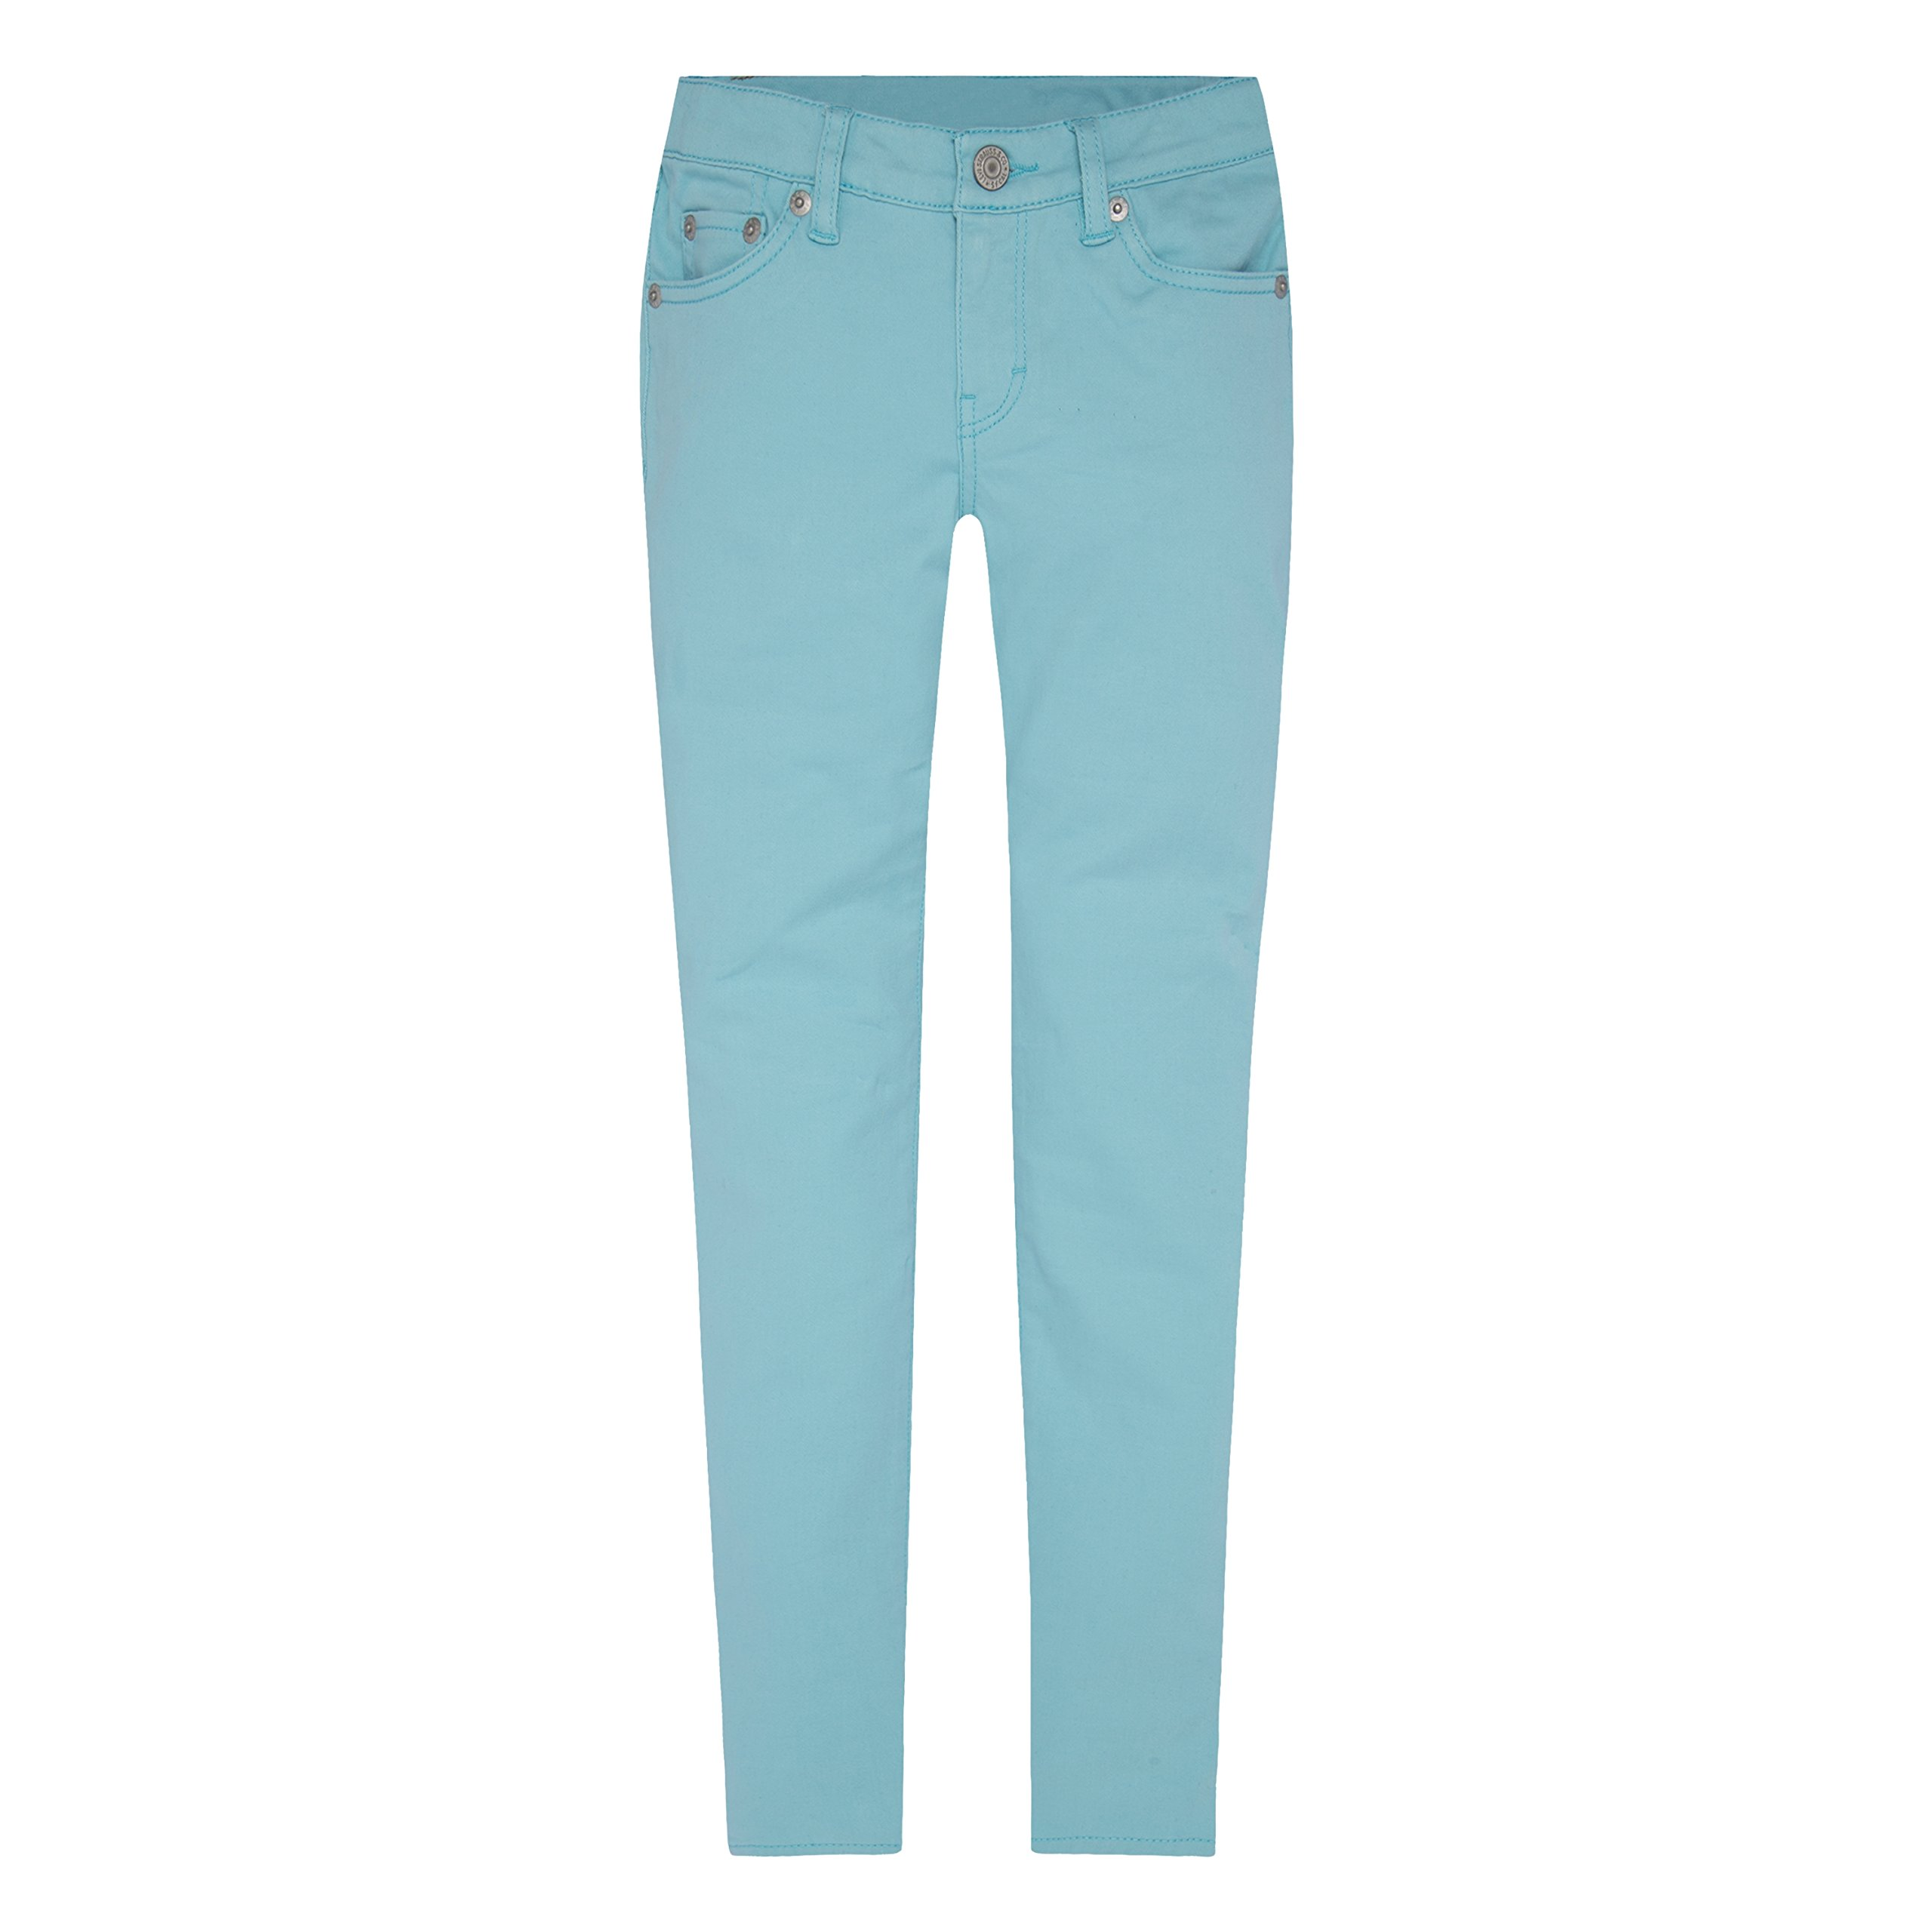 Levi's Girls' 710 Super Skinny Fit Soft Brushed Jeans